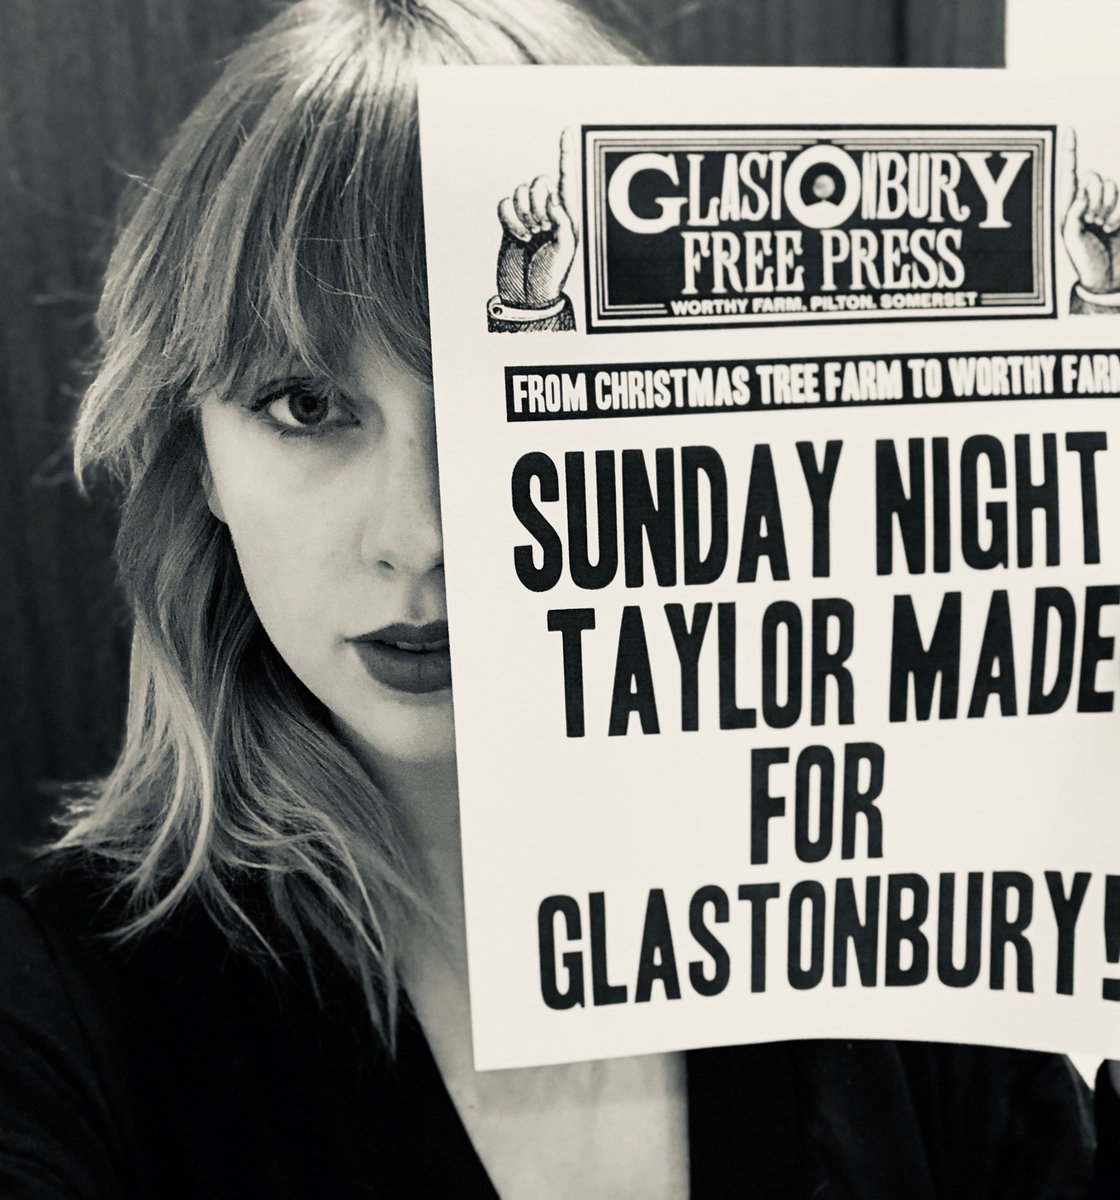 I'm ecstatic to tell you that I'll be headlining Glastonbury on its 50th anniversary - See you there! 💋